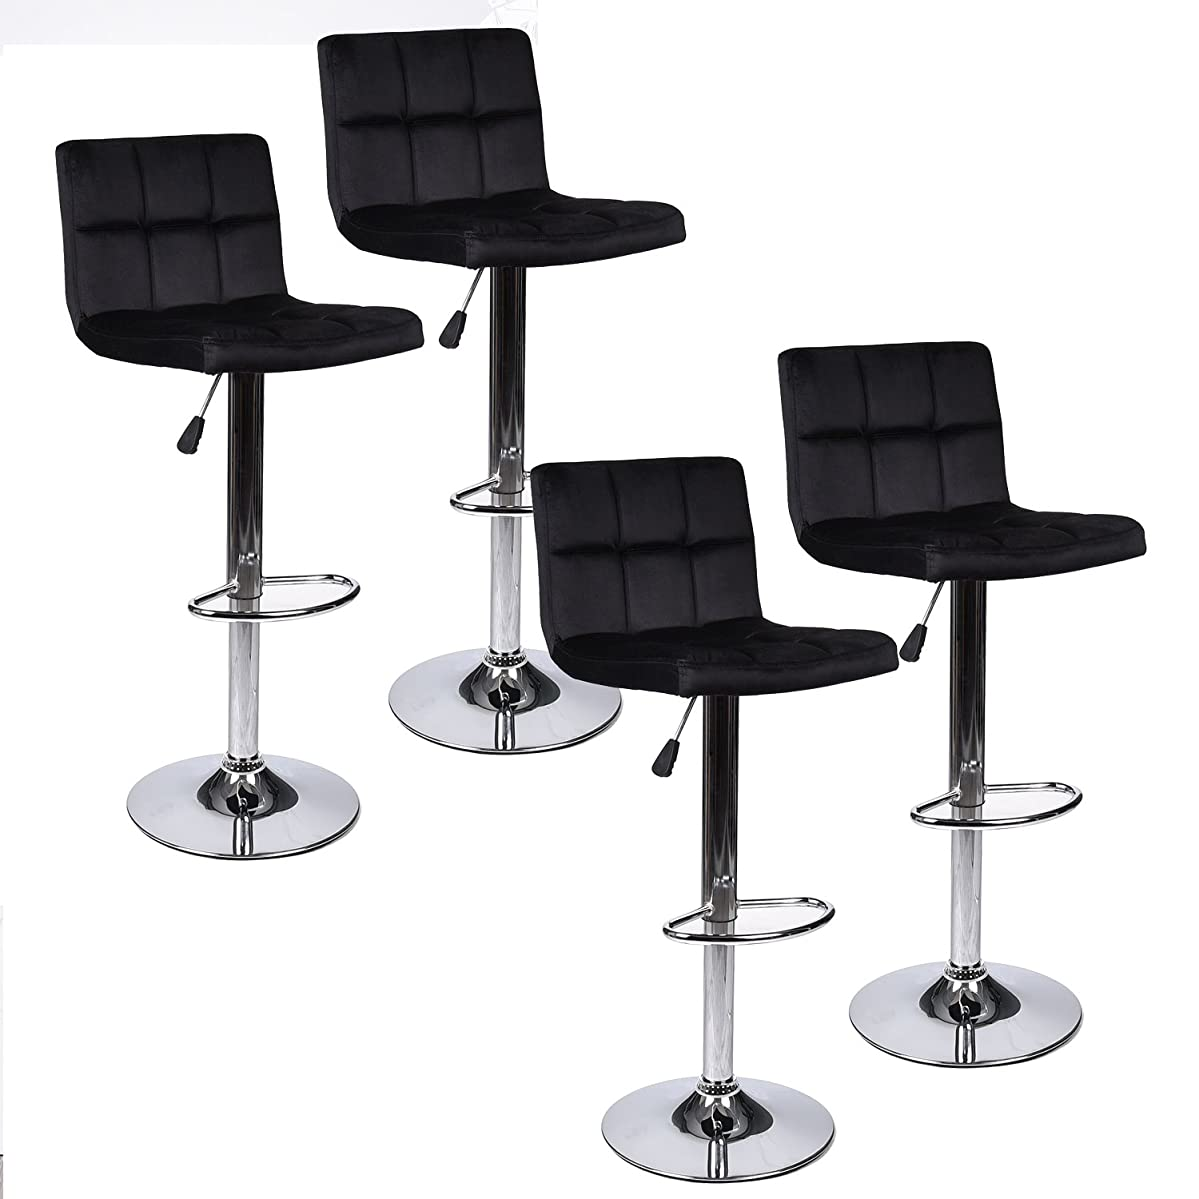 Mid - Back Square Fabric Bar Stools, 360 Degree Swivel Adjustable Hydraulic Counted Height Dining Chairs with Chrome Base, Set of 4 (Black 2)